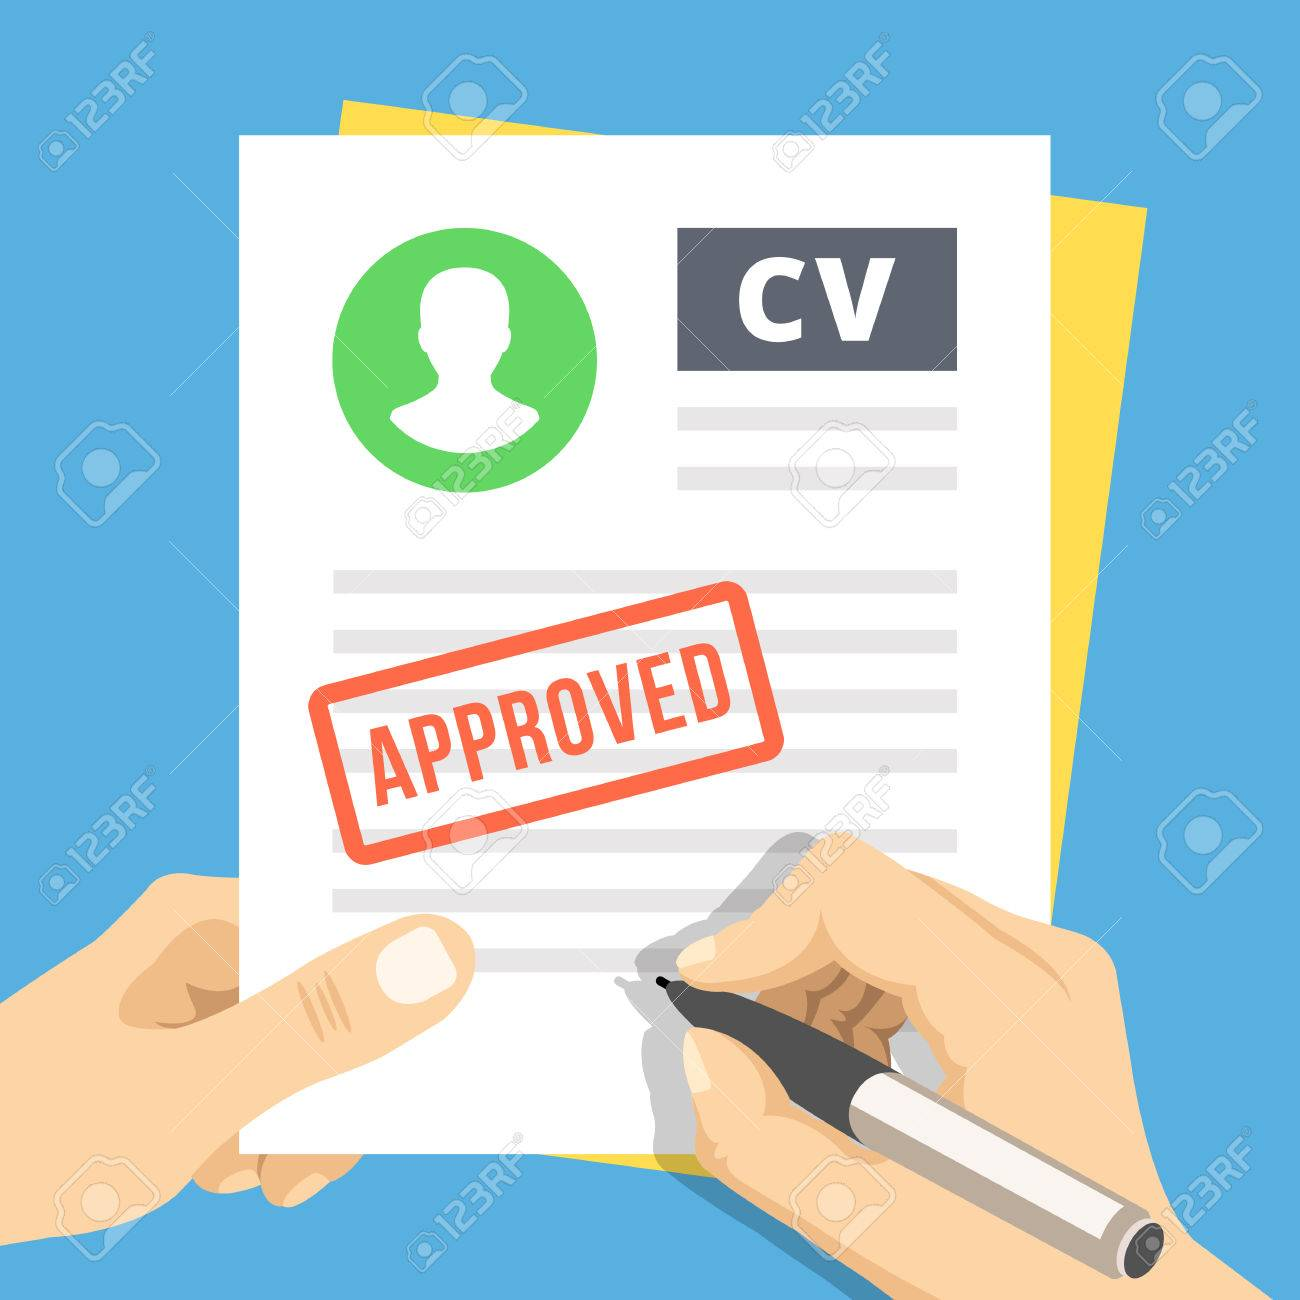 Cv Approved Hand With Pen Sign A Job Application Royalty Free